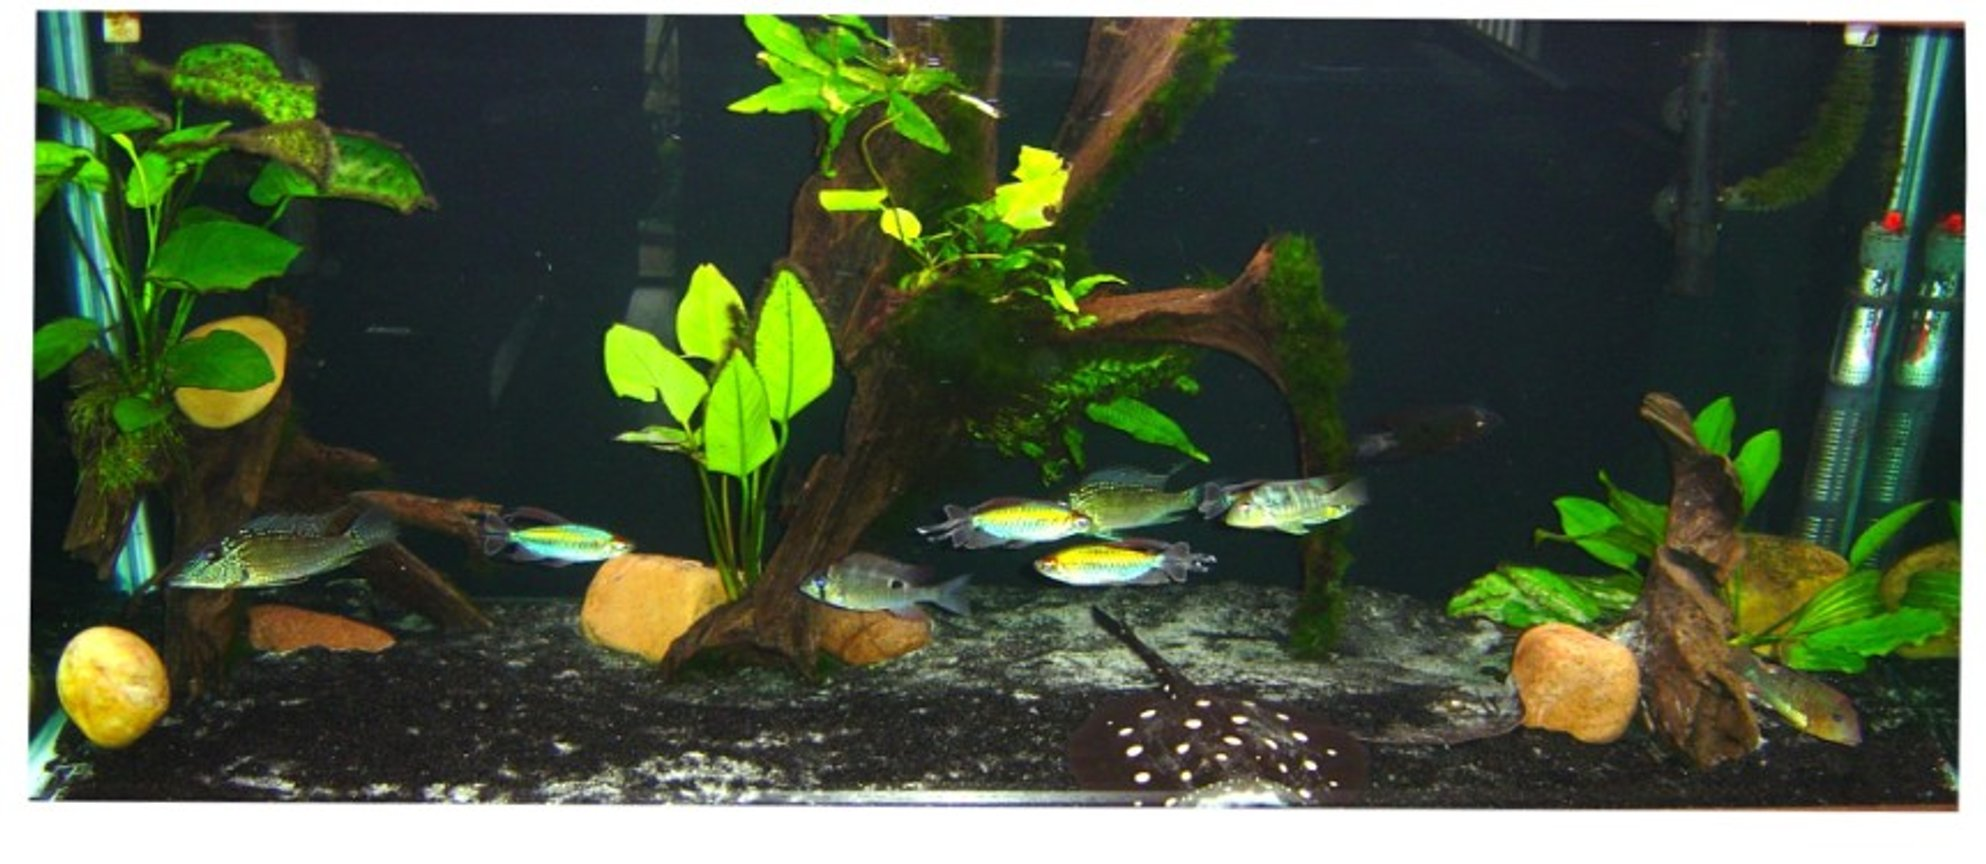 90 gallons freshwater fish tank (mostly fish and non-living decorations) - 90 gal amazon